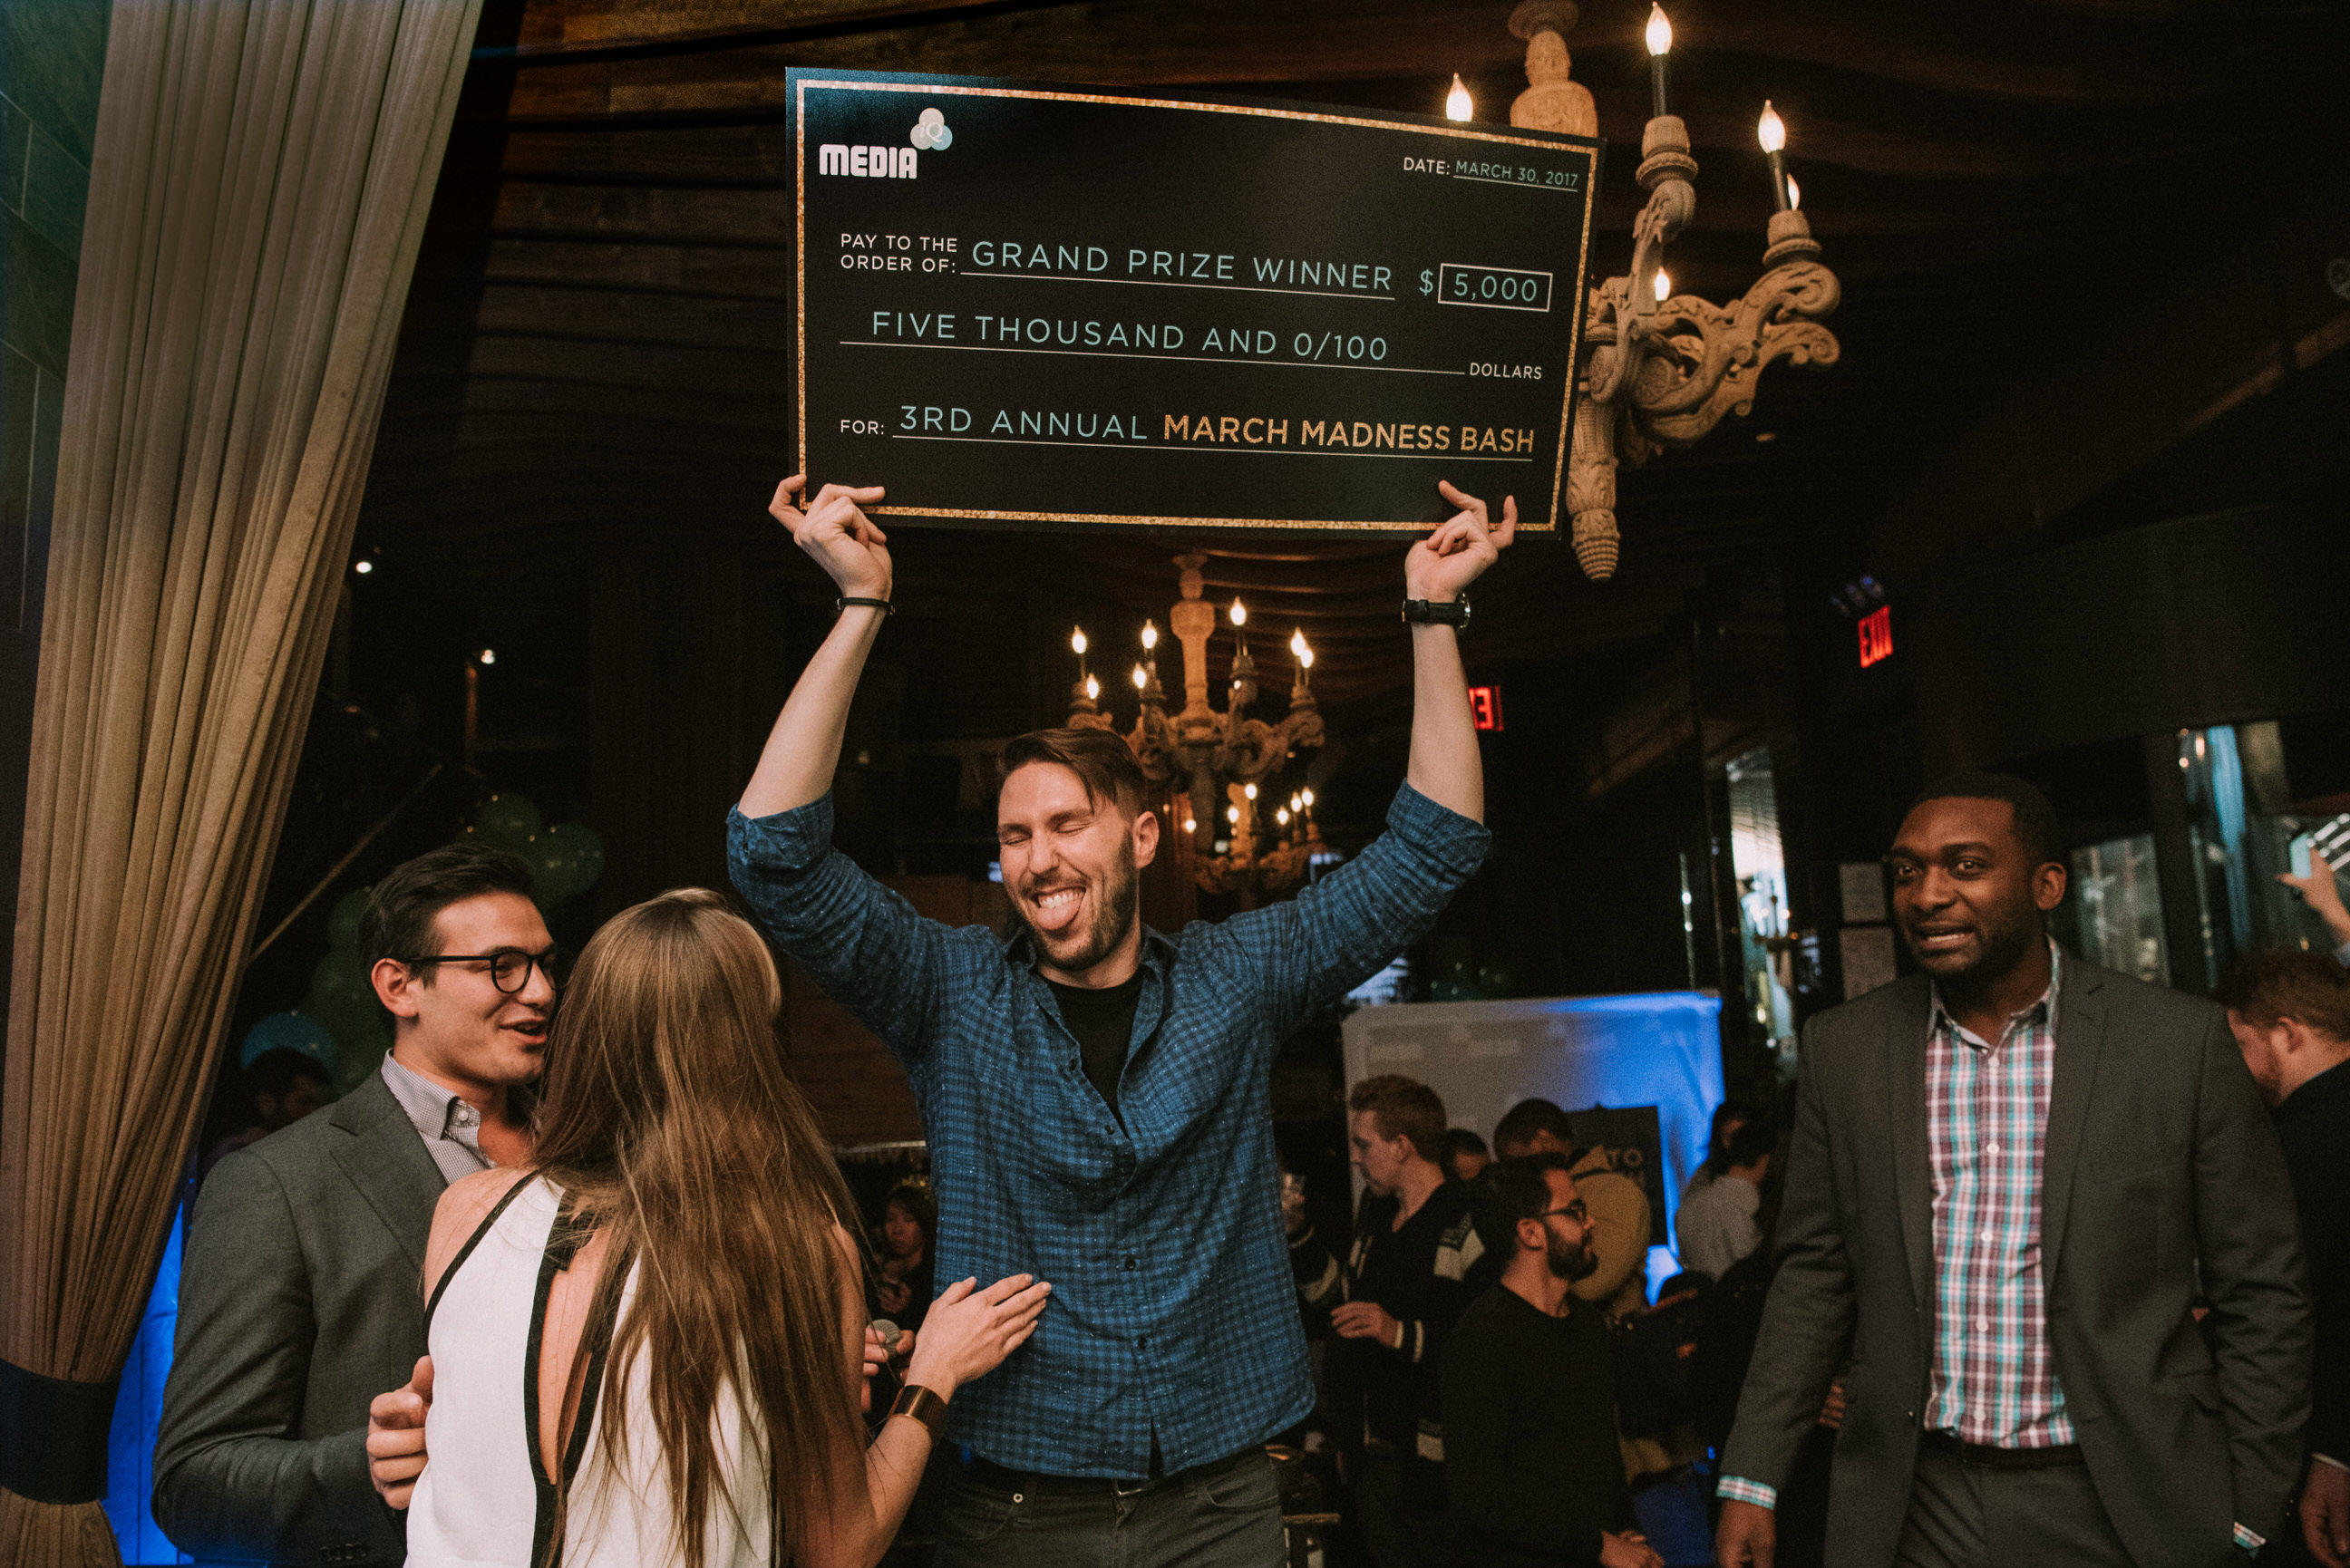 NYC Corporate Event Photographer March Madness Bash